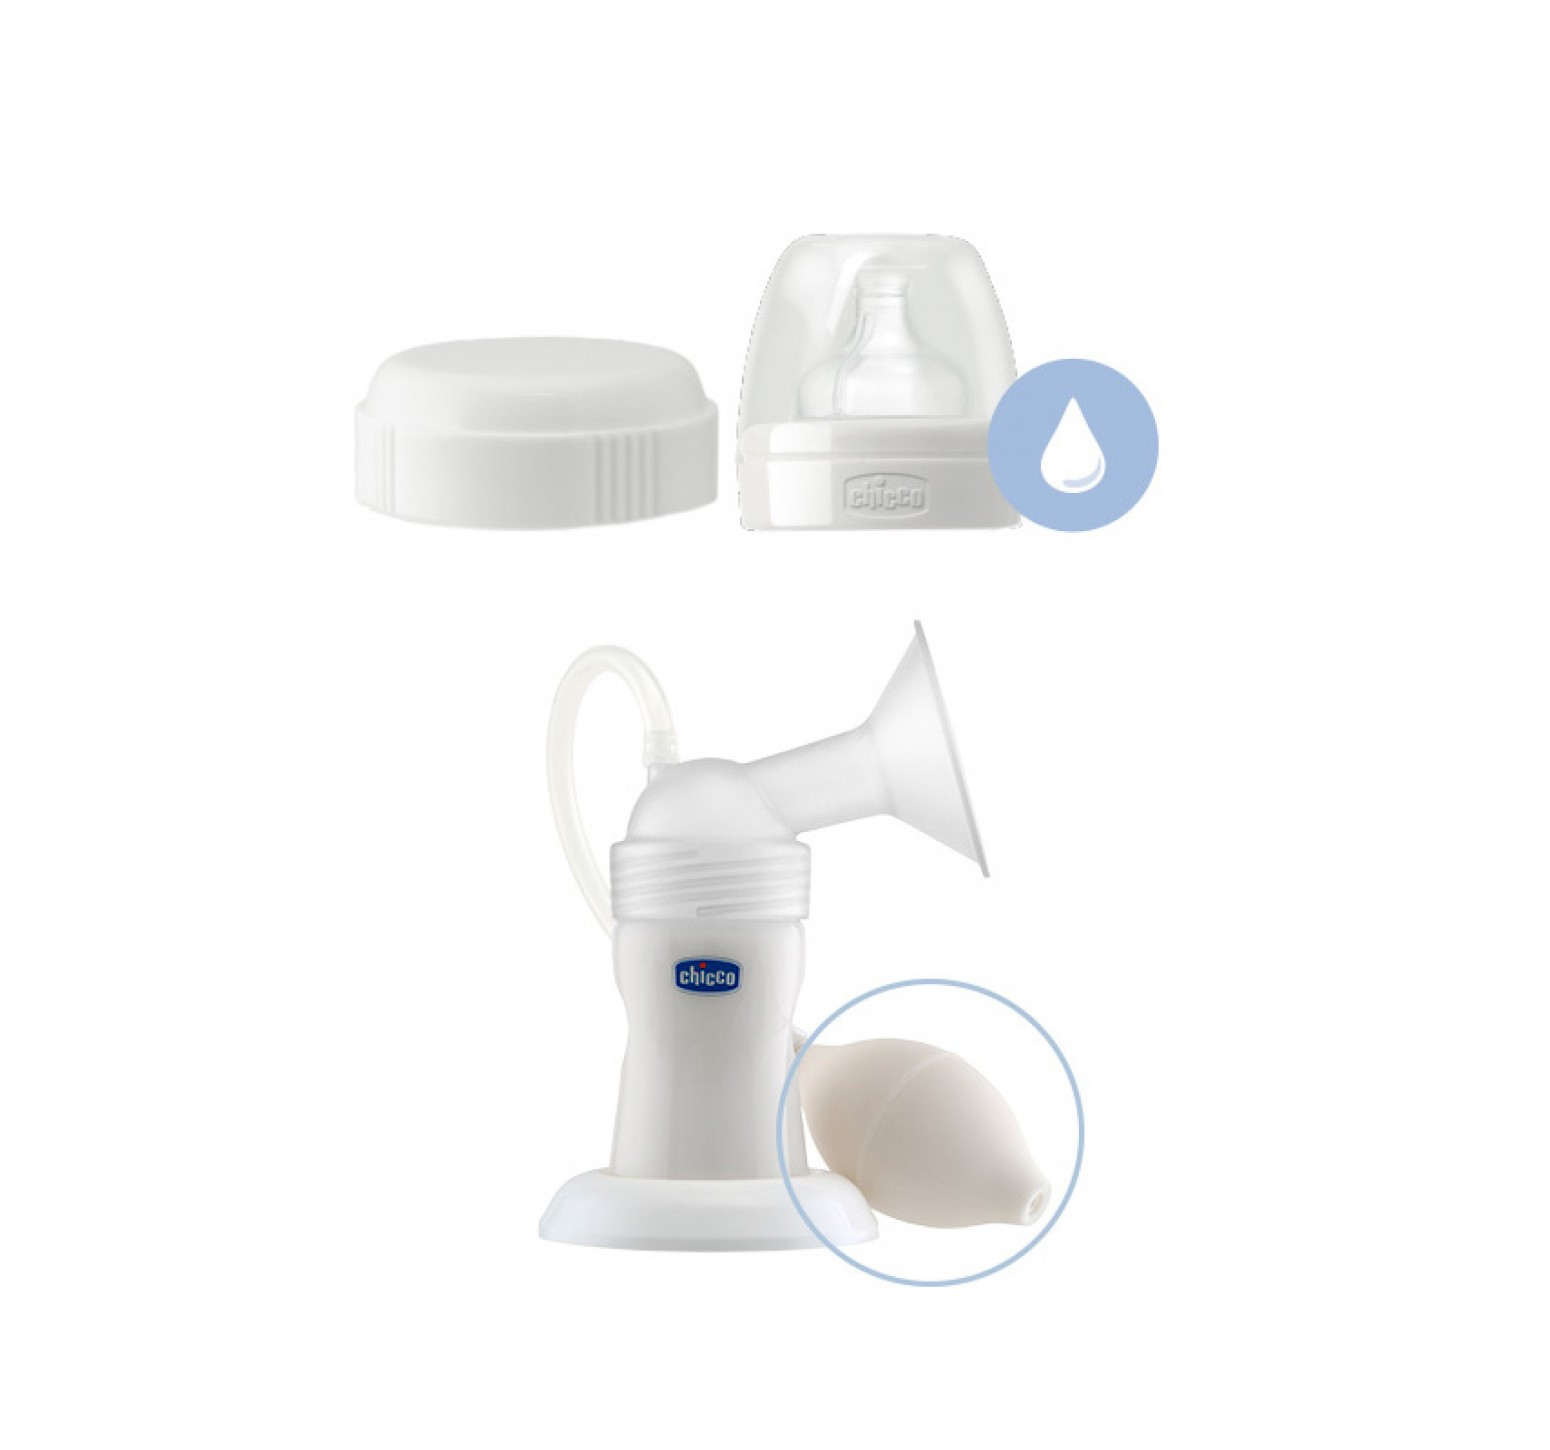 Chicco Sacaleche classic breast pump